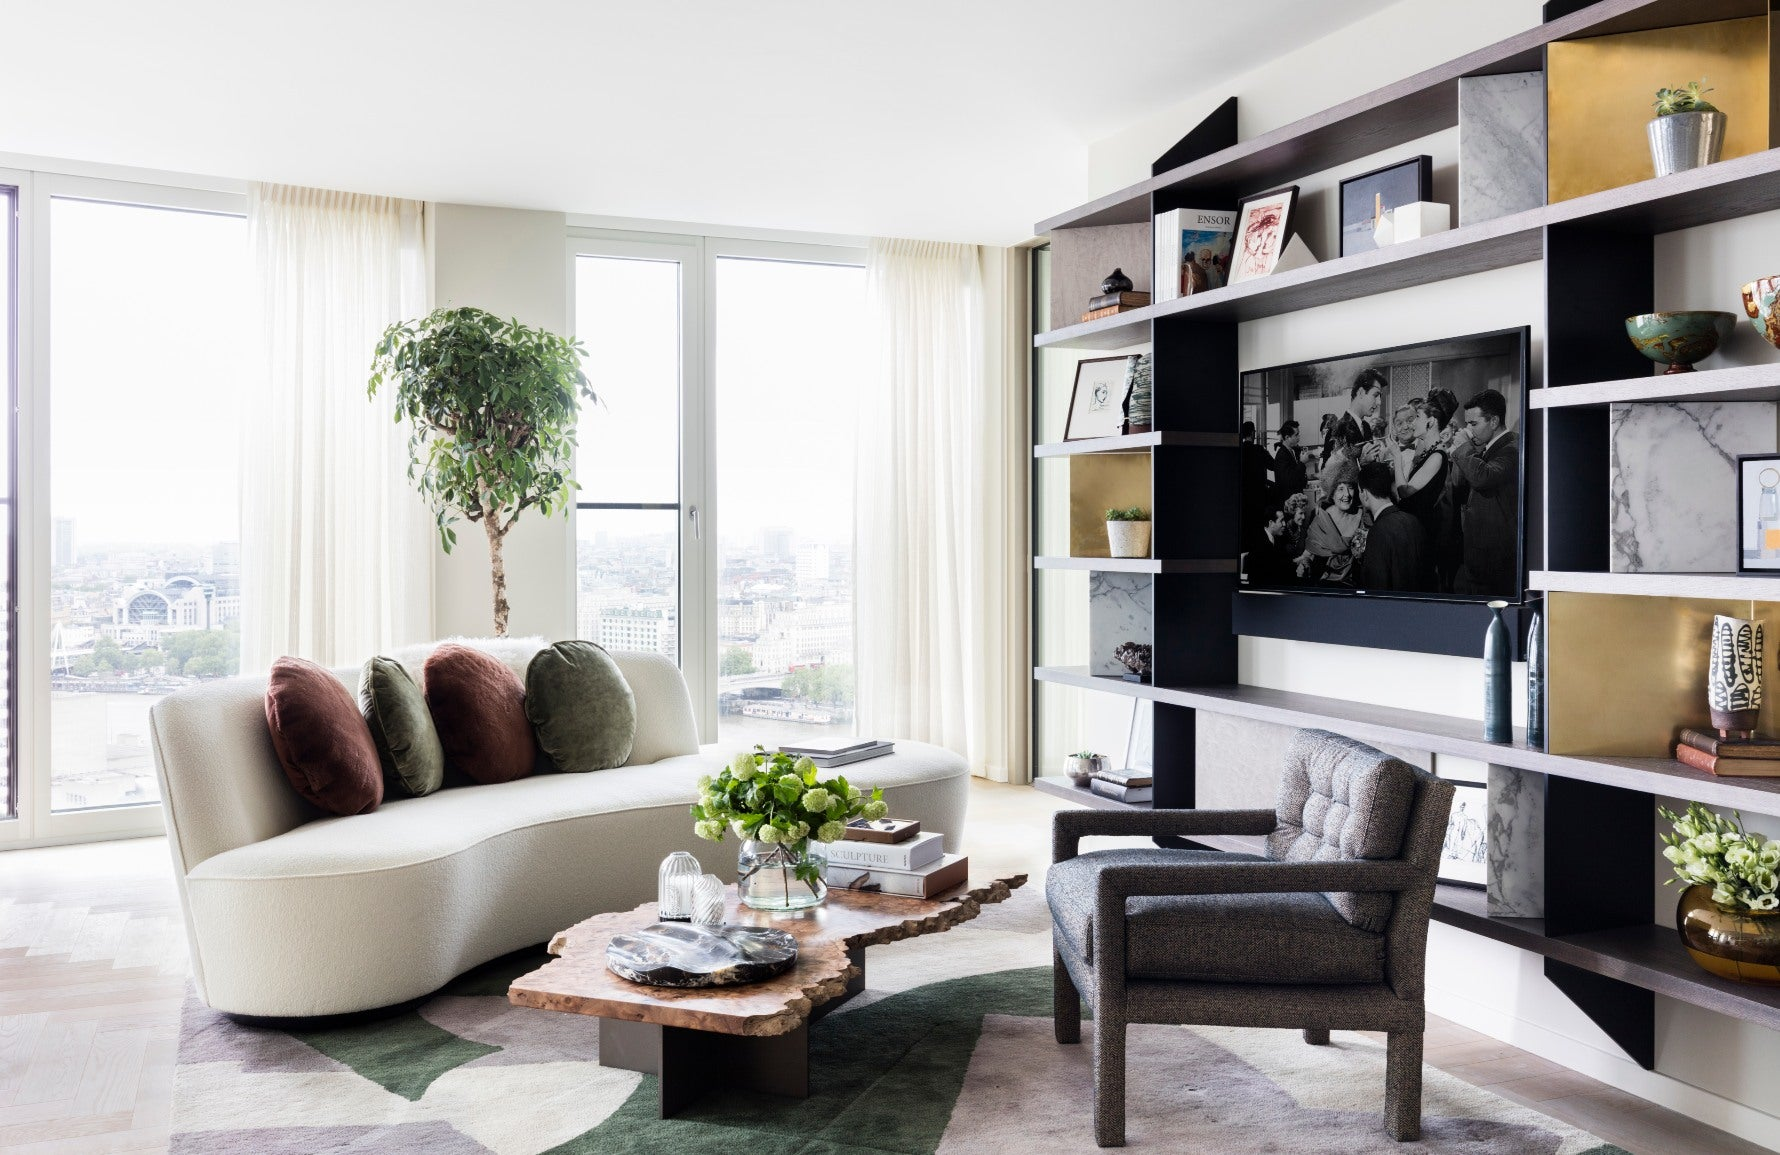 How To Style Your Sofa Cushions – Central cushion arrangement – Shop Luxury Cushions at LuxDeco.co